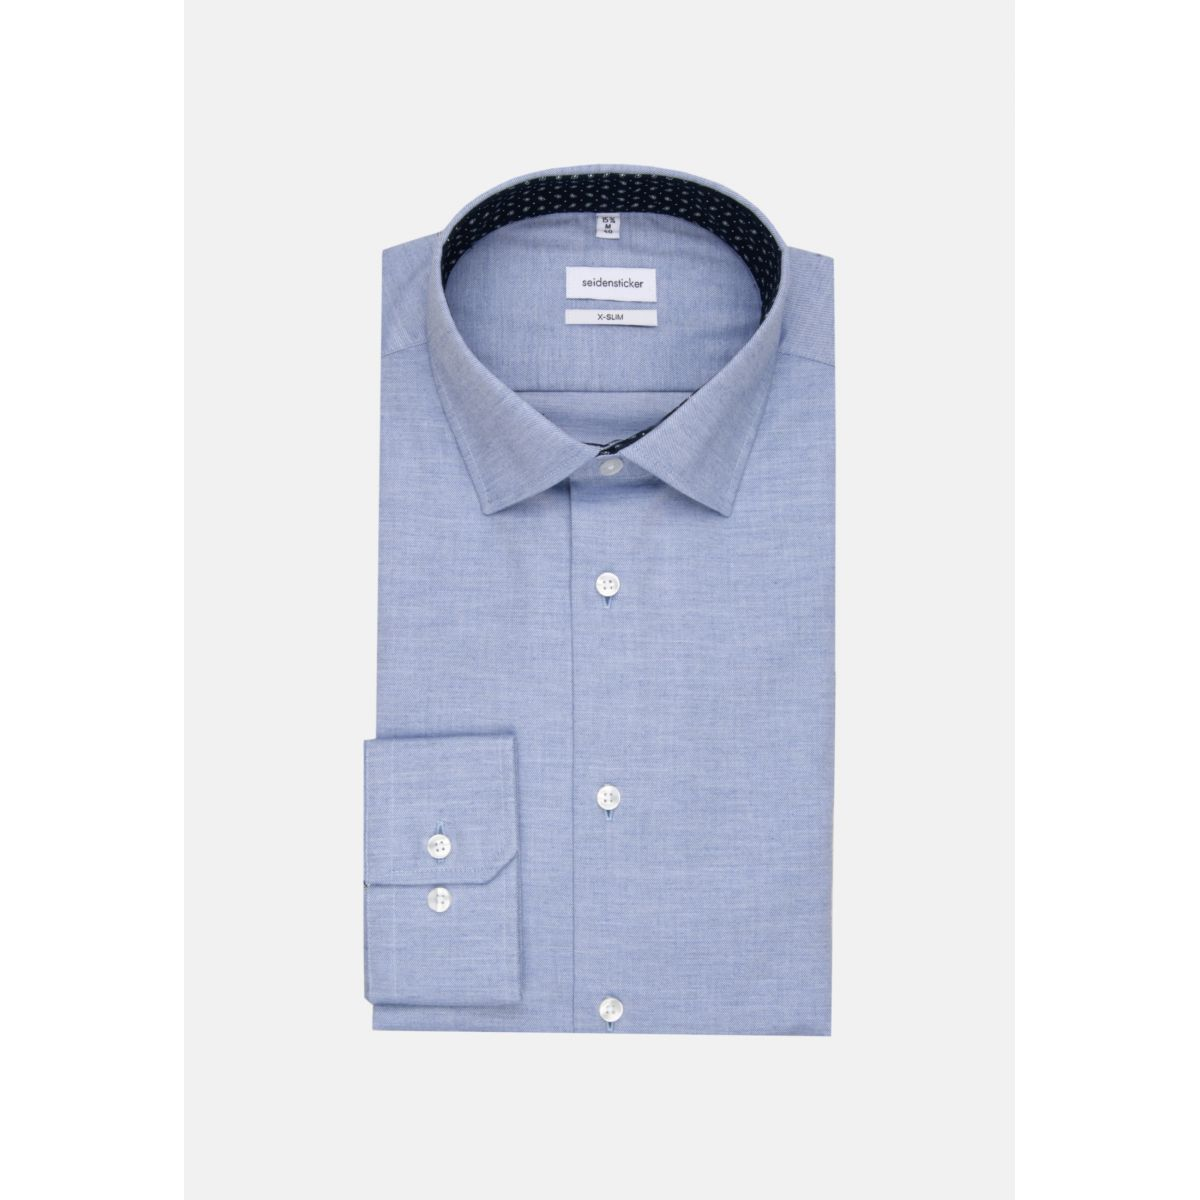 Chemise extra-slim twill bleu ciel manches extra-longues